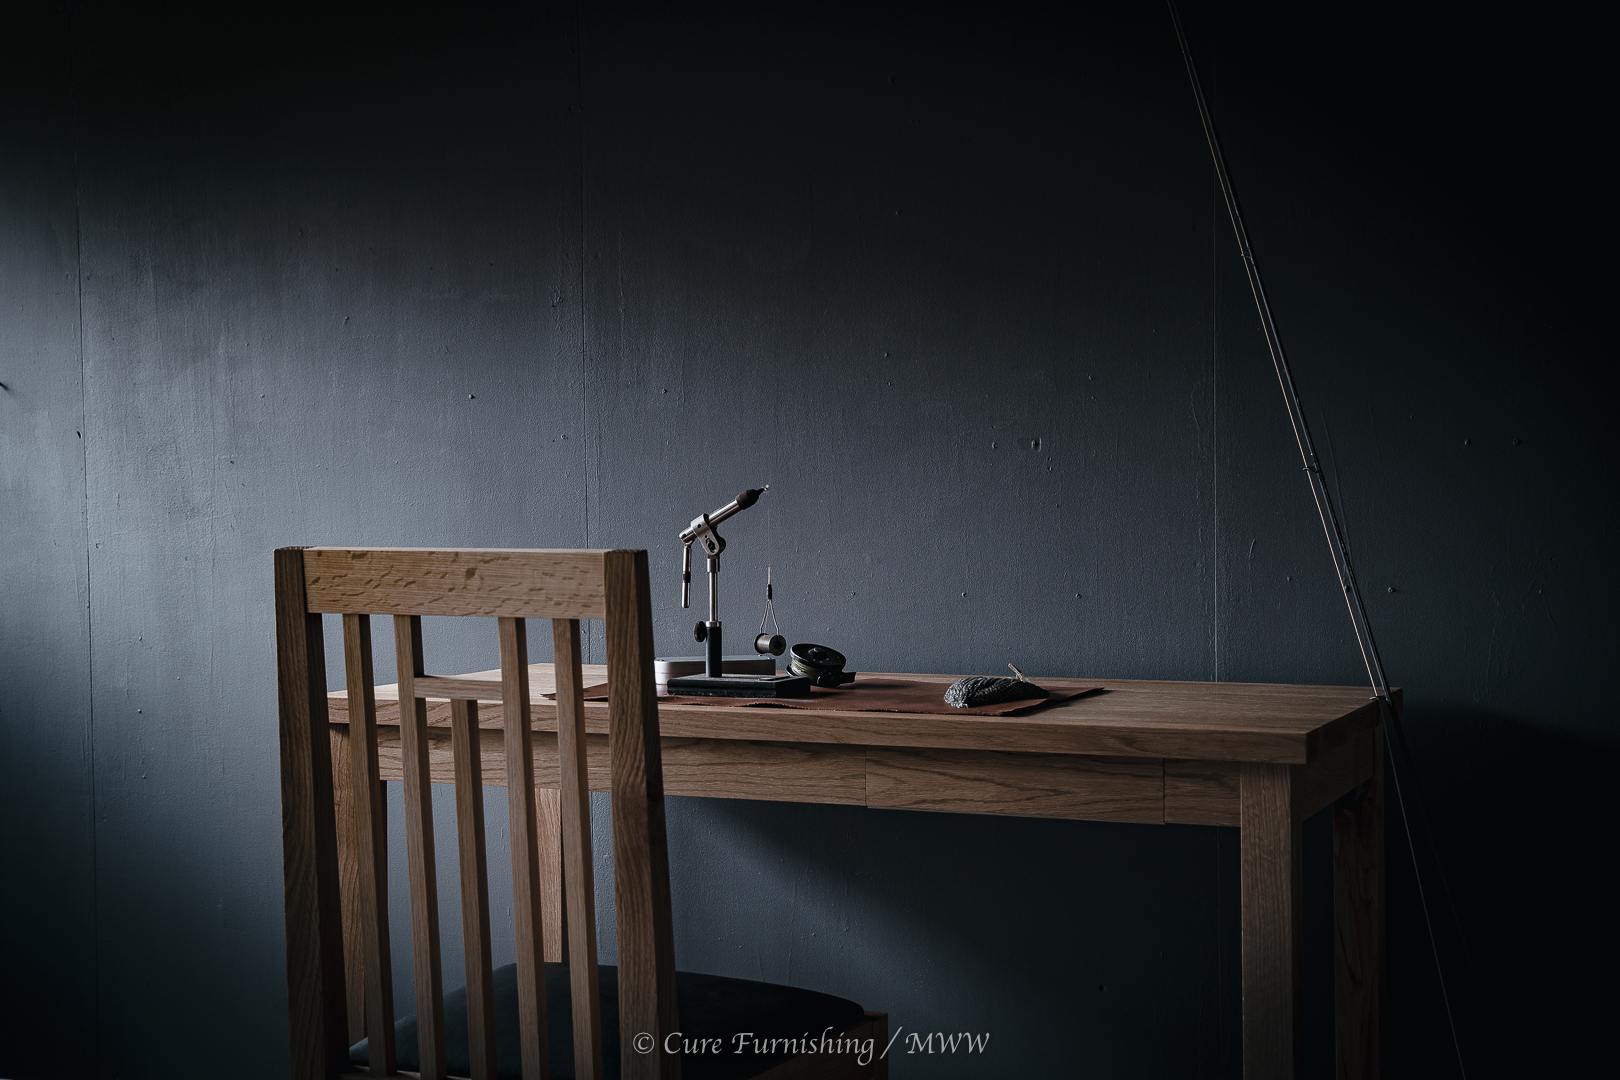 Desk & Chair for flytying | Cure furnishing | HIDA Cure wood works | MWW